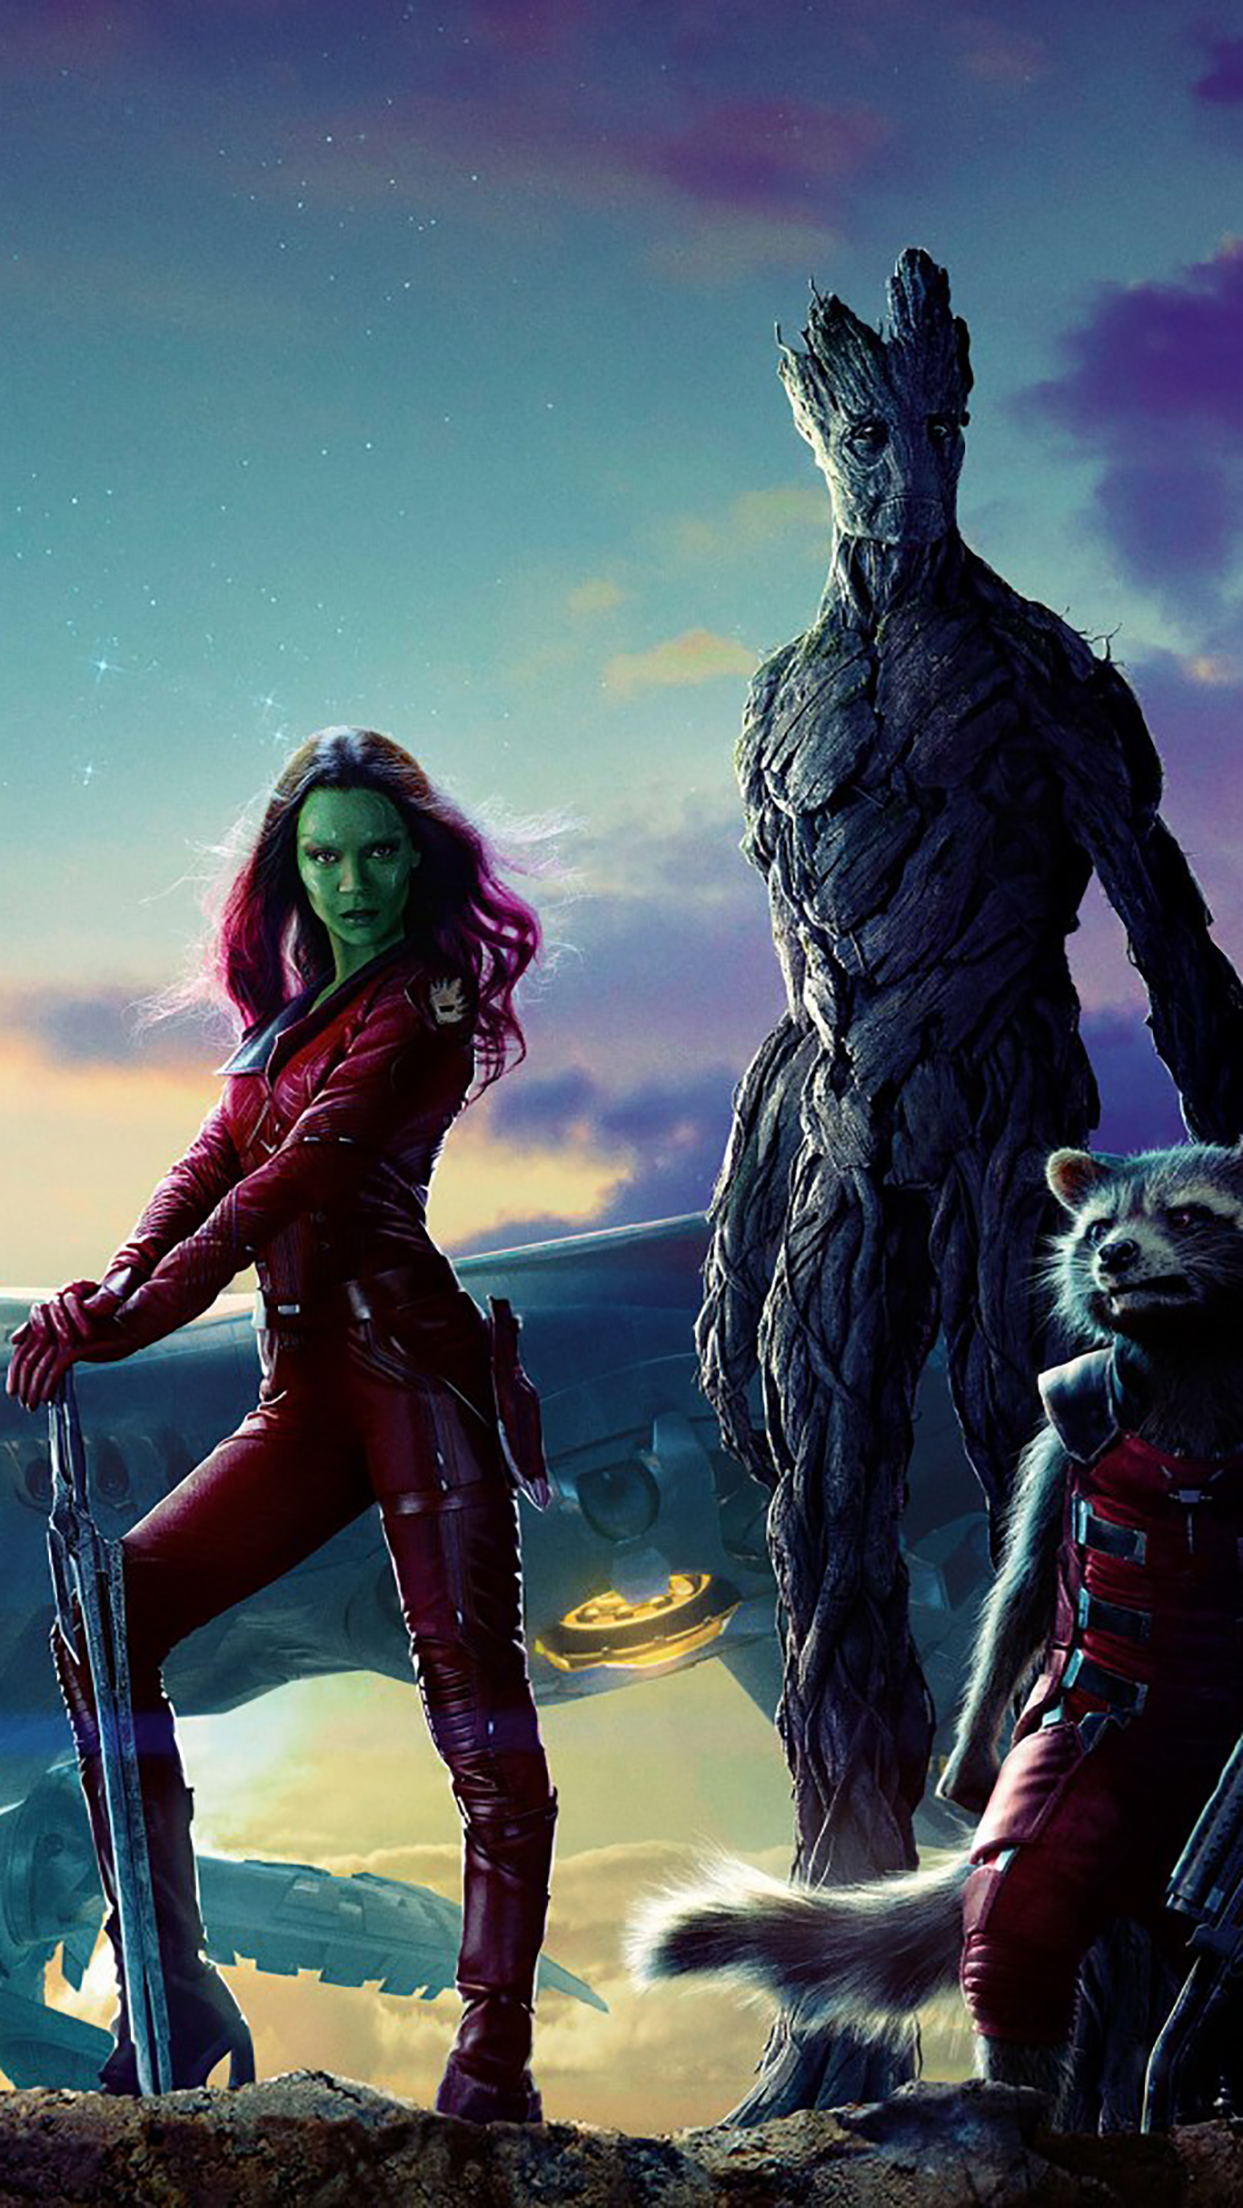 Guardians Of The Galaxy Poster 3 3Wallpapers iPhone Parallax Guardians Of The Galaxy : Poster 3